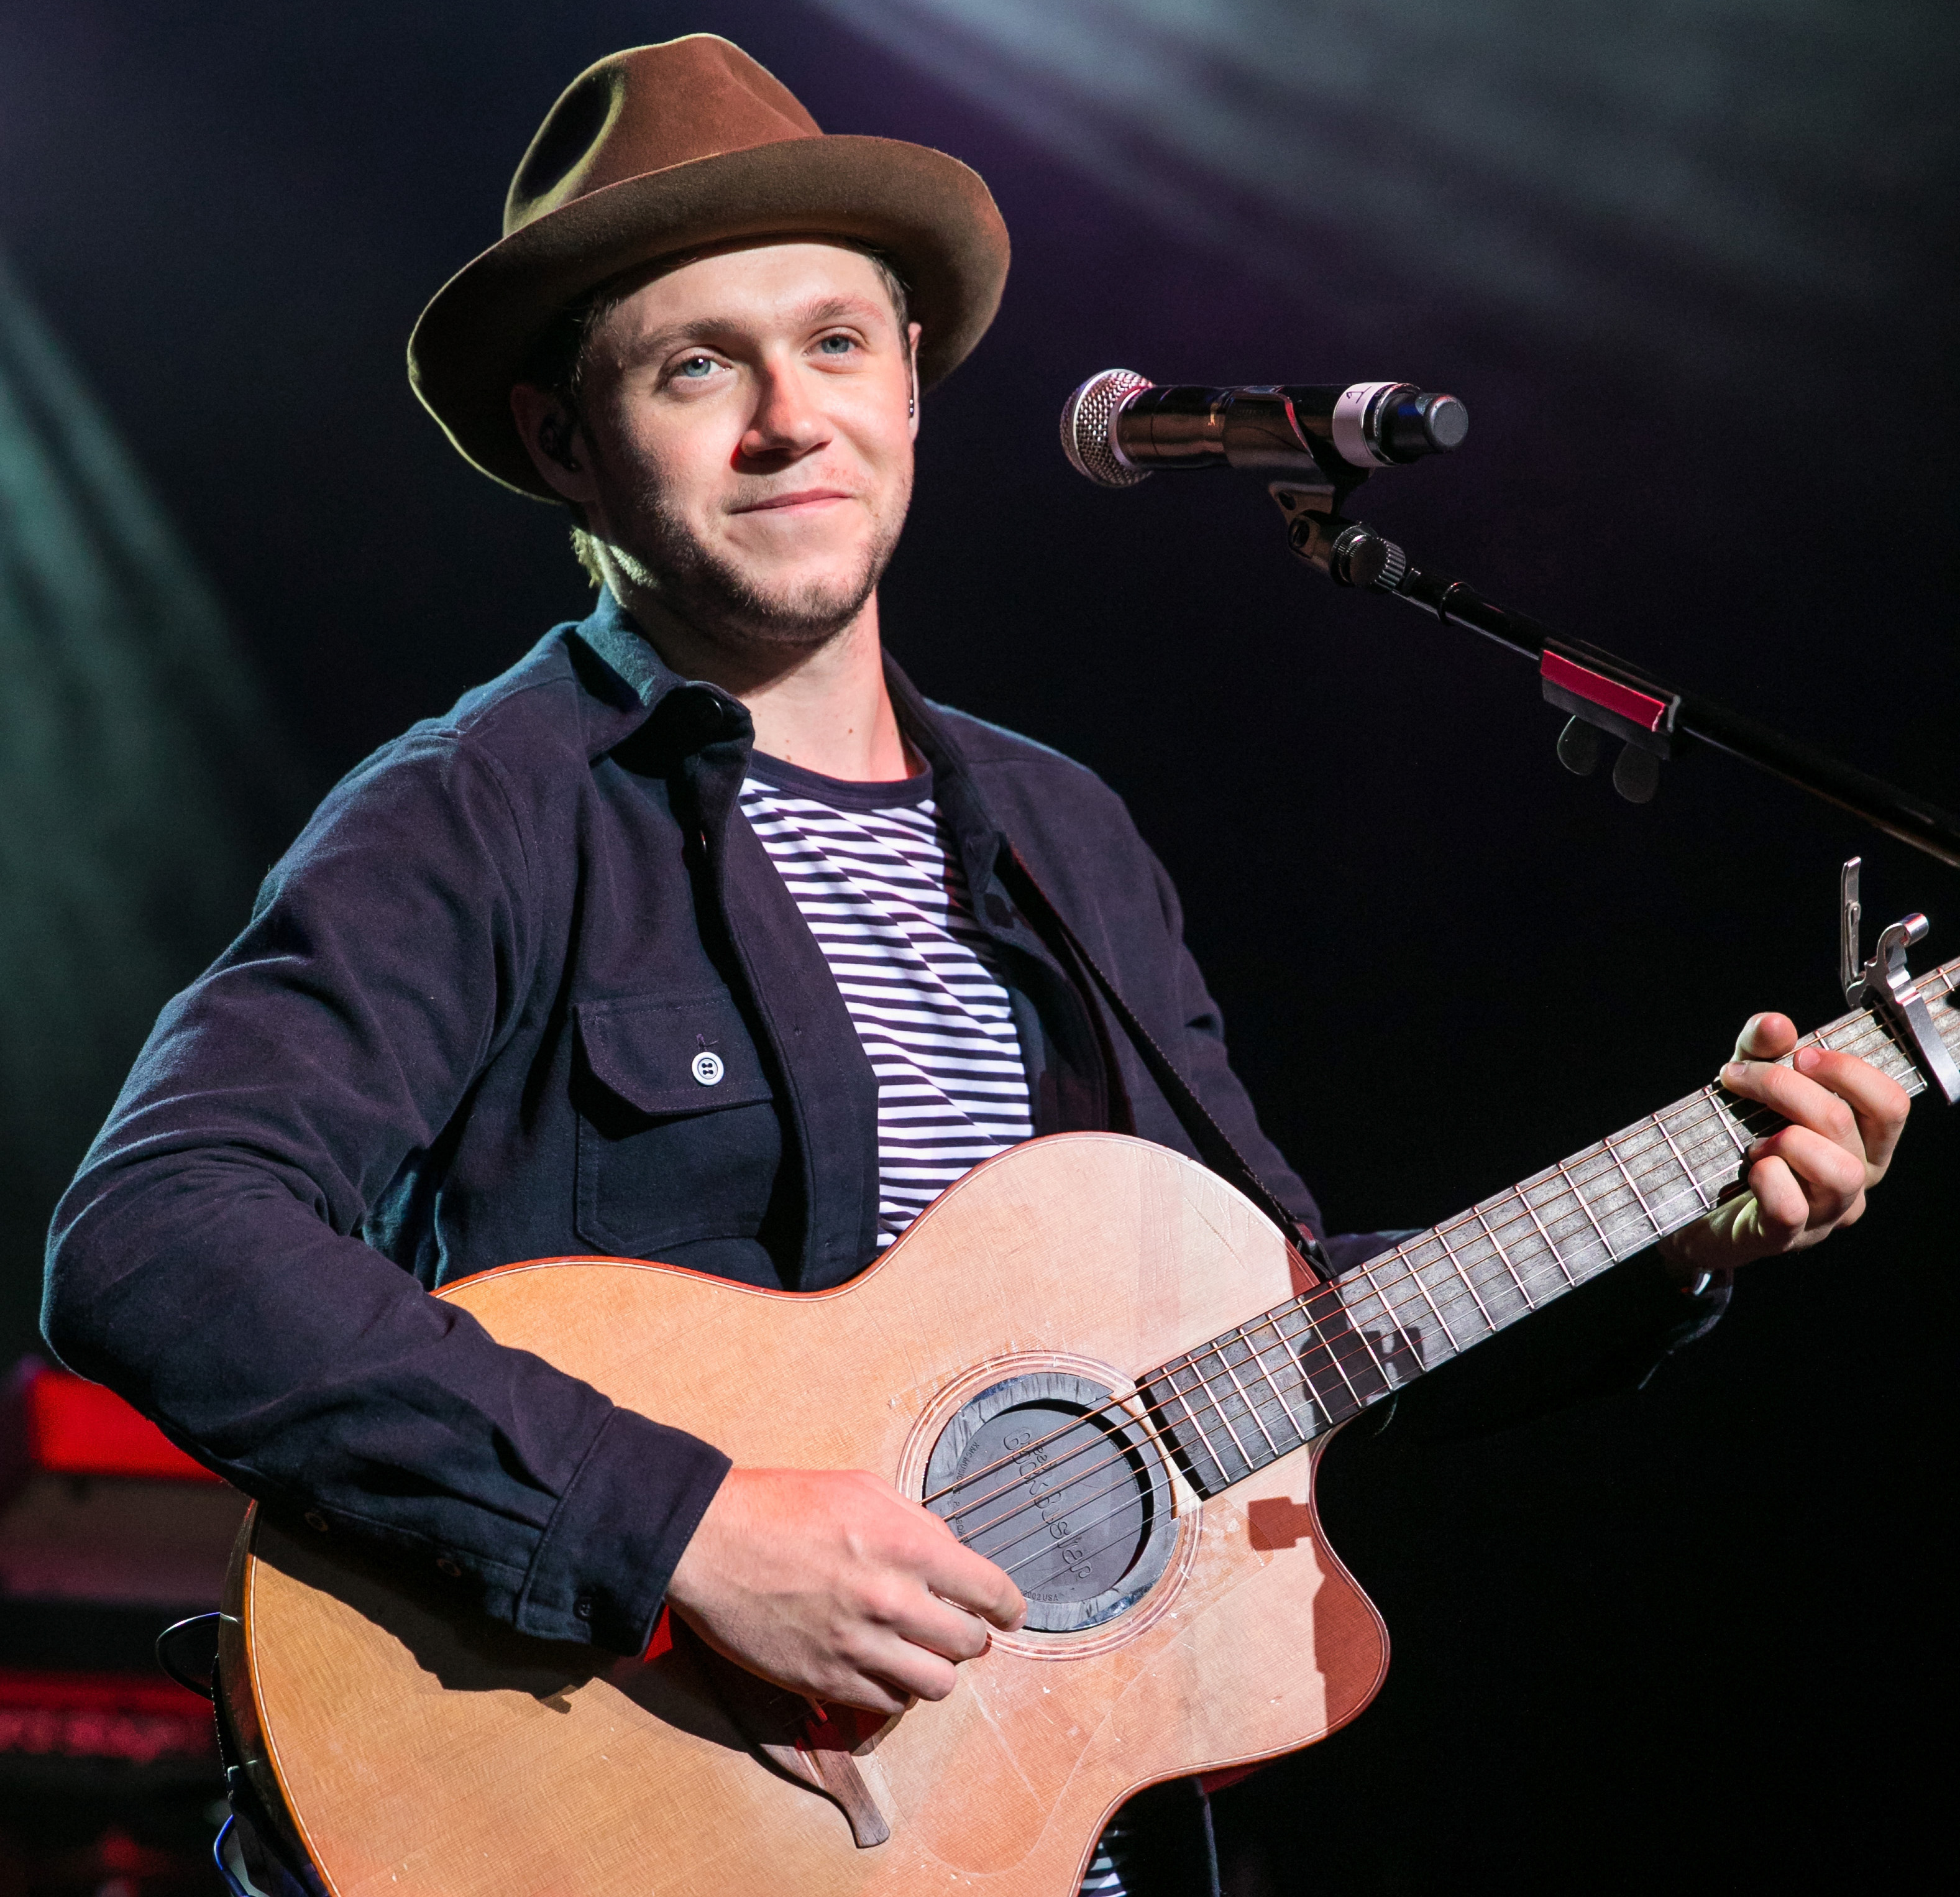 Niall Horan Plays One Direction Song During First Solo Concert